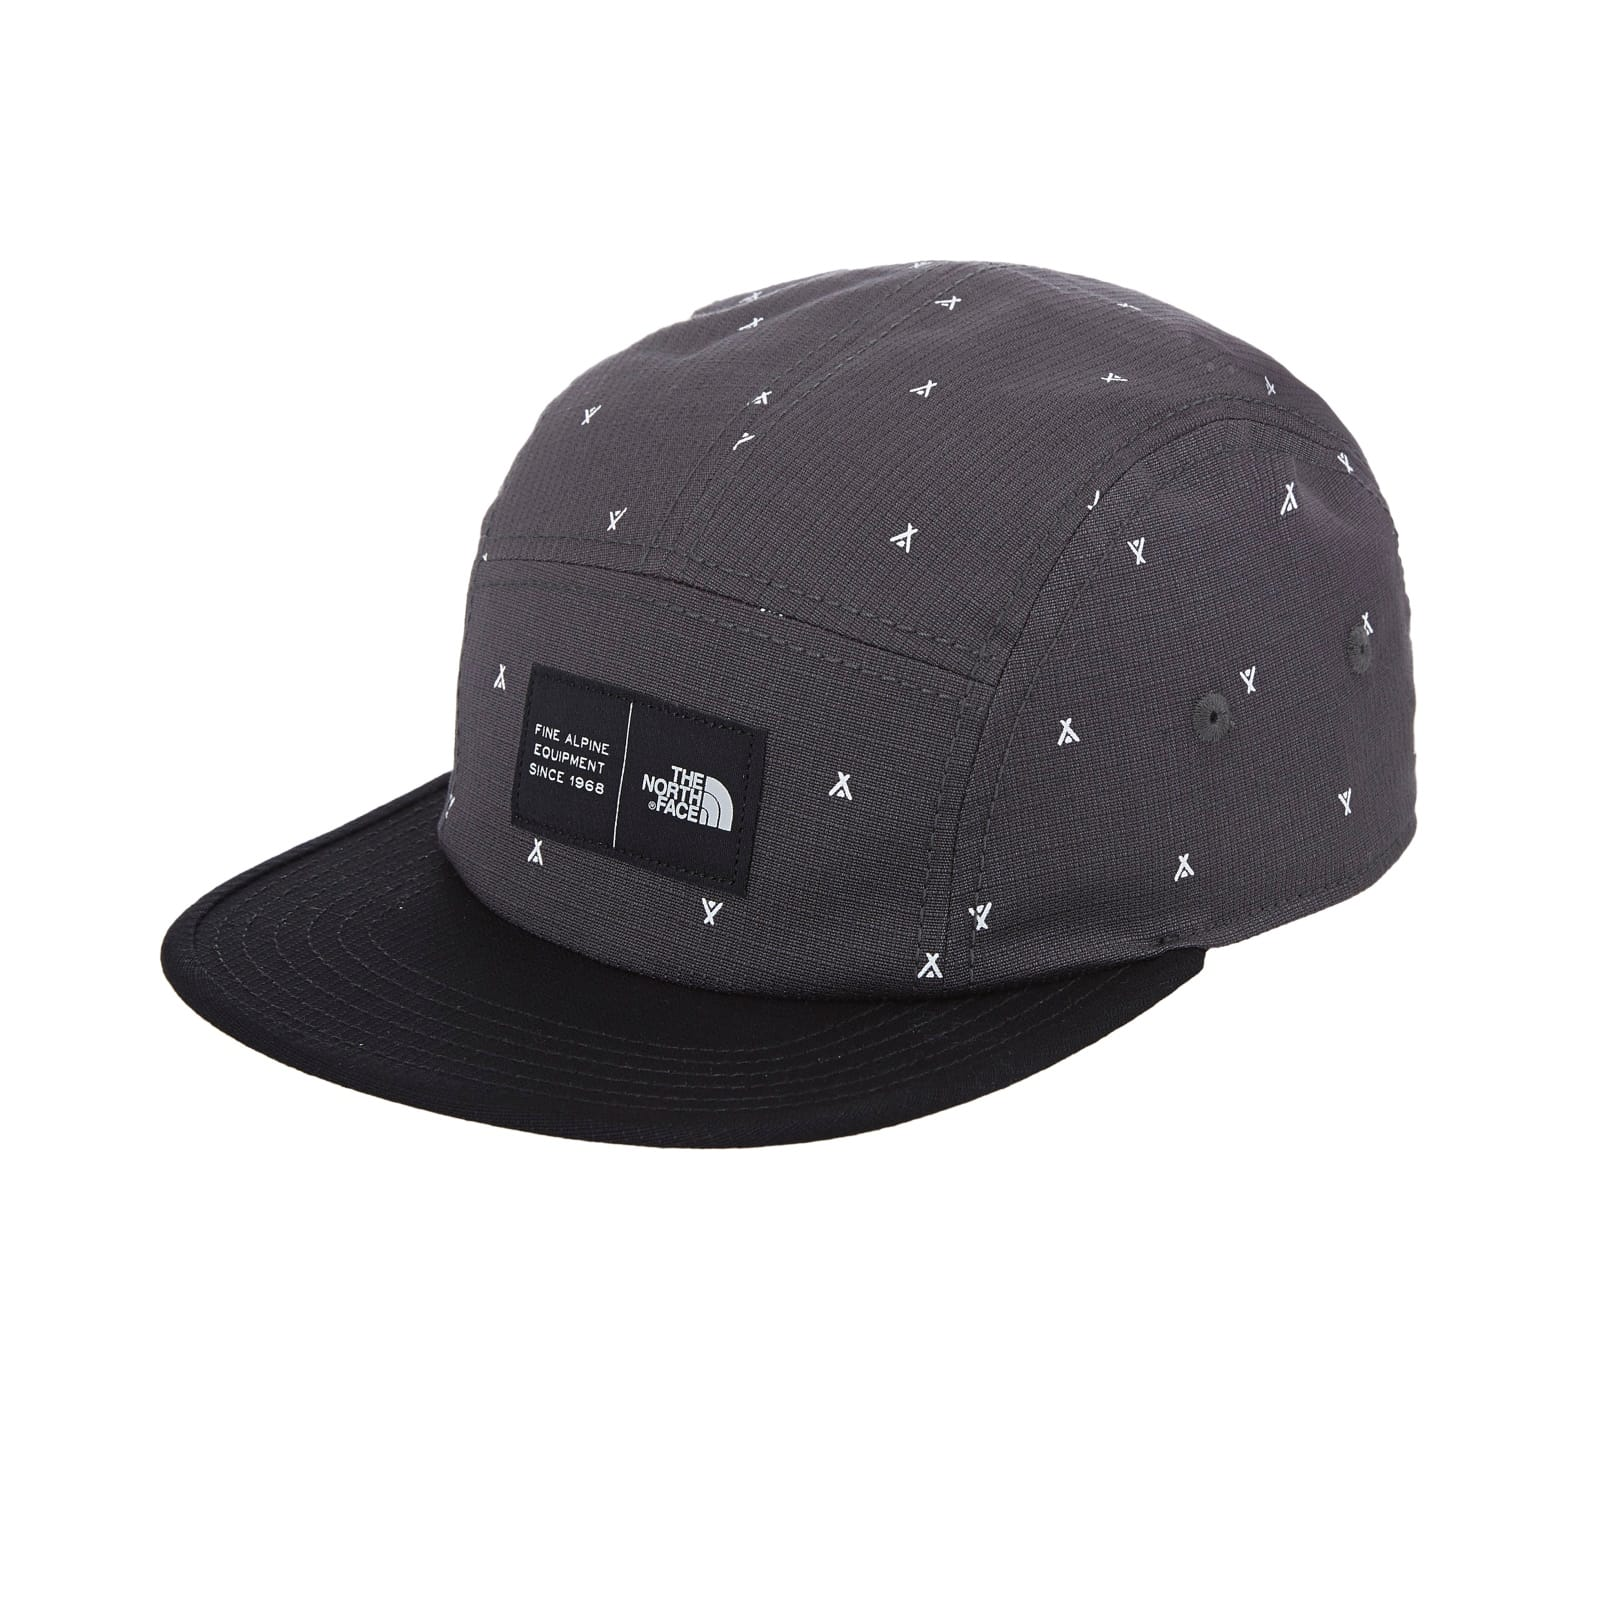 Buy The North Face TNF Five Panel Ball Cap from Outnorth a8bb2a31758